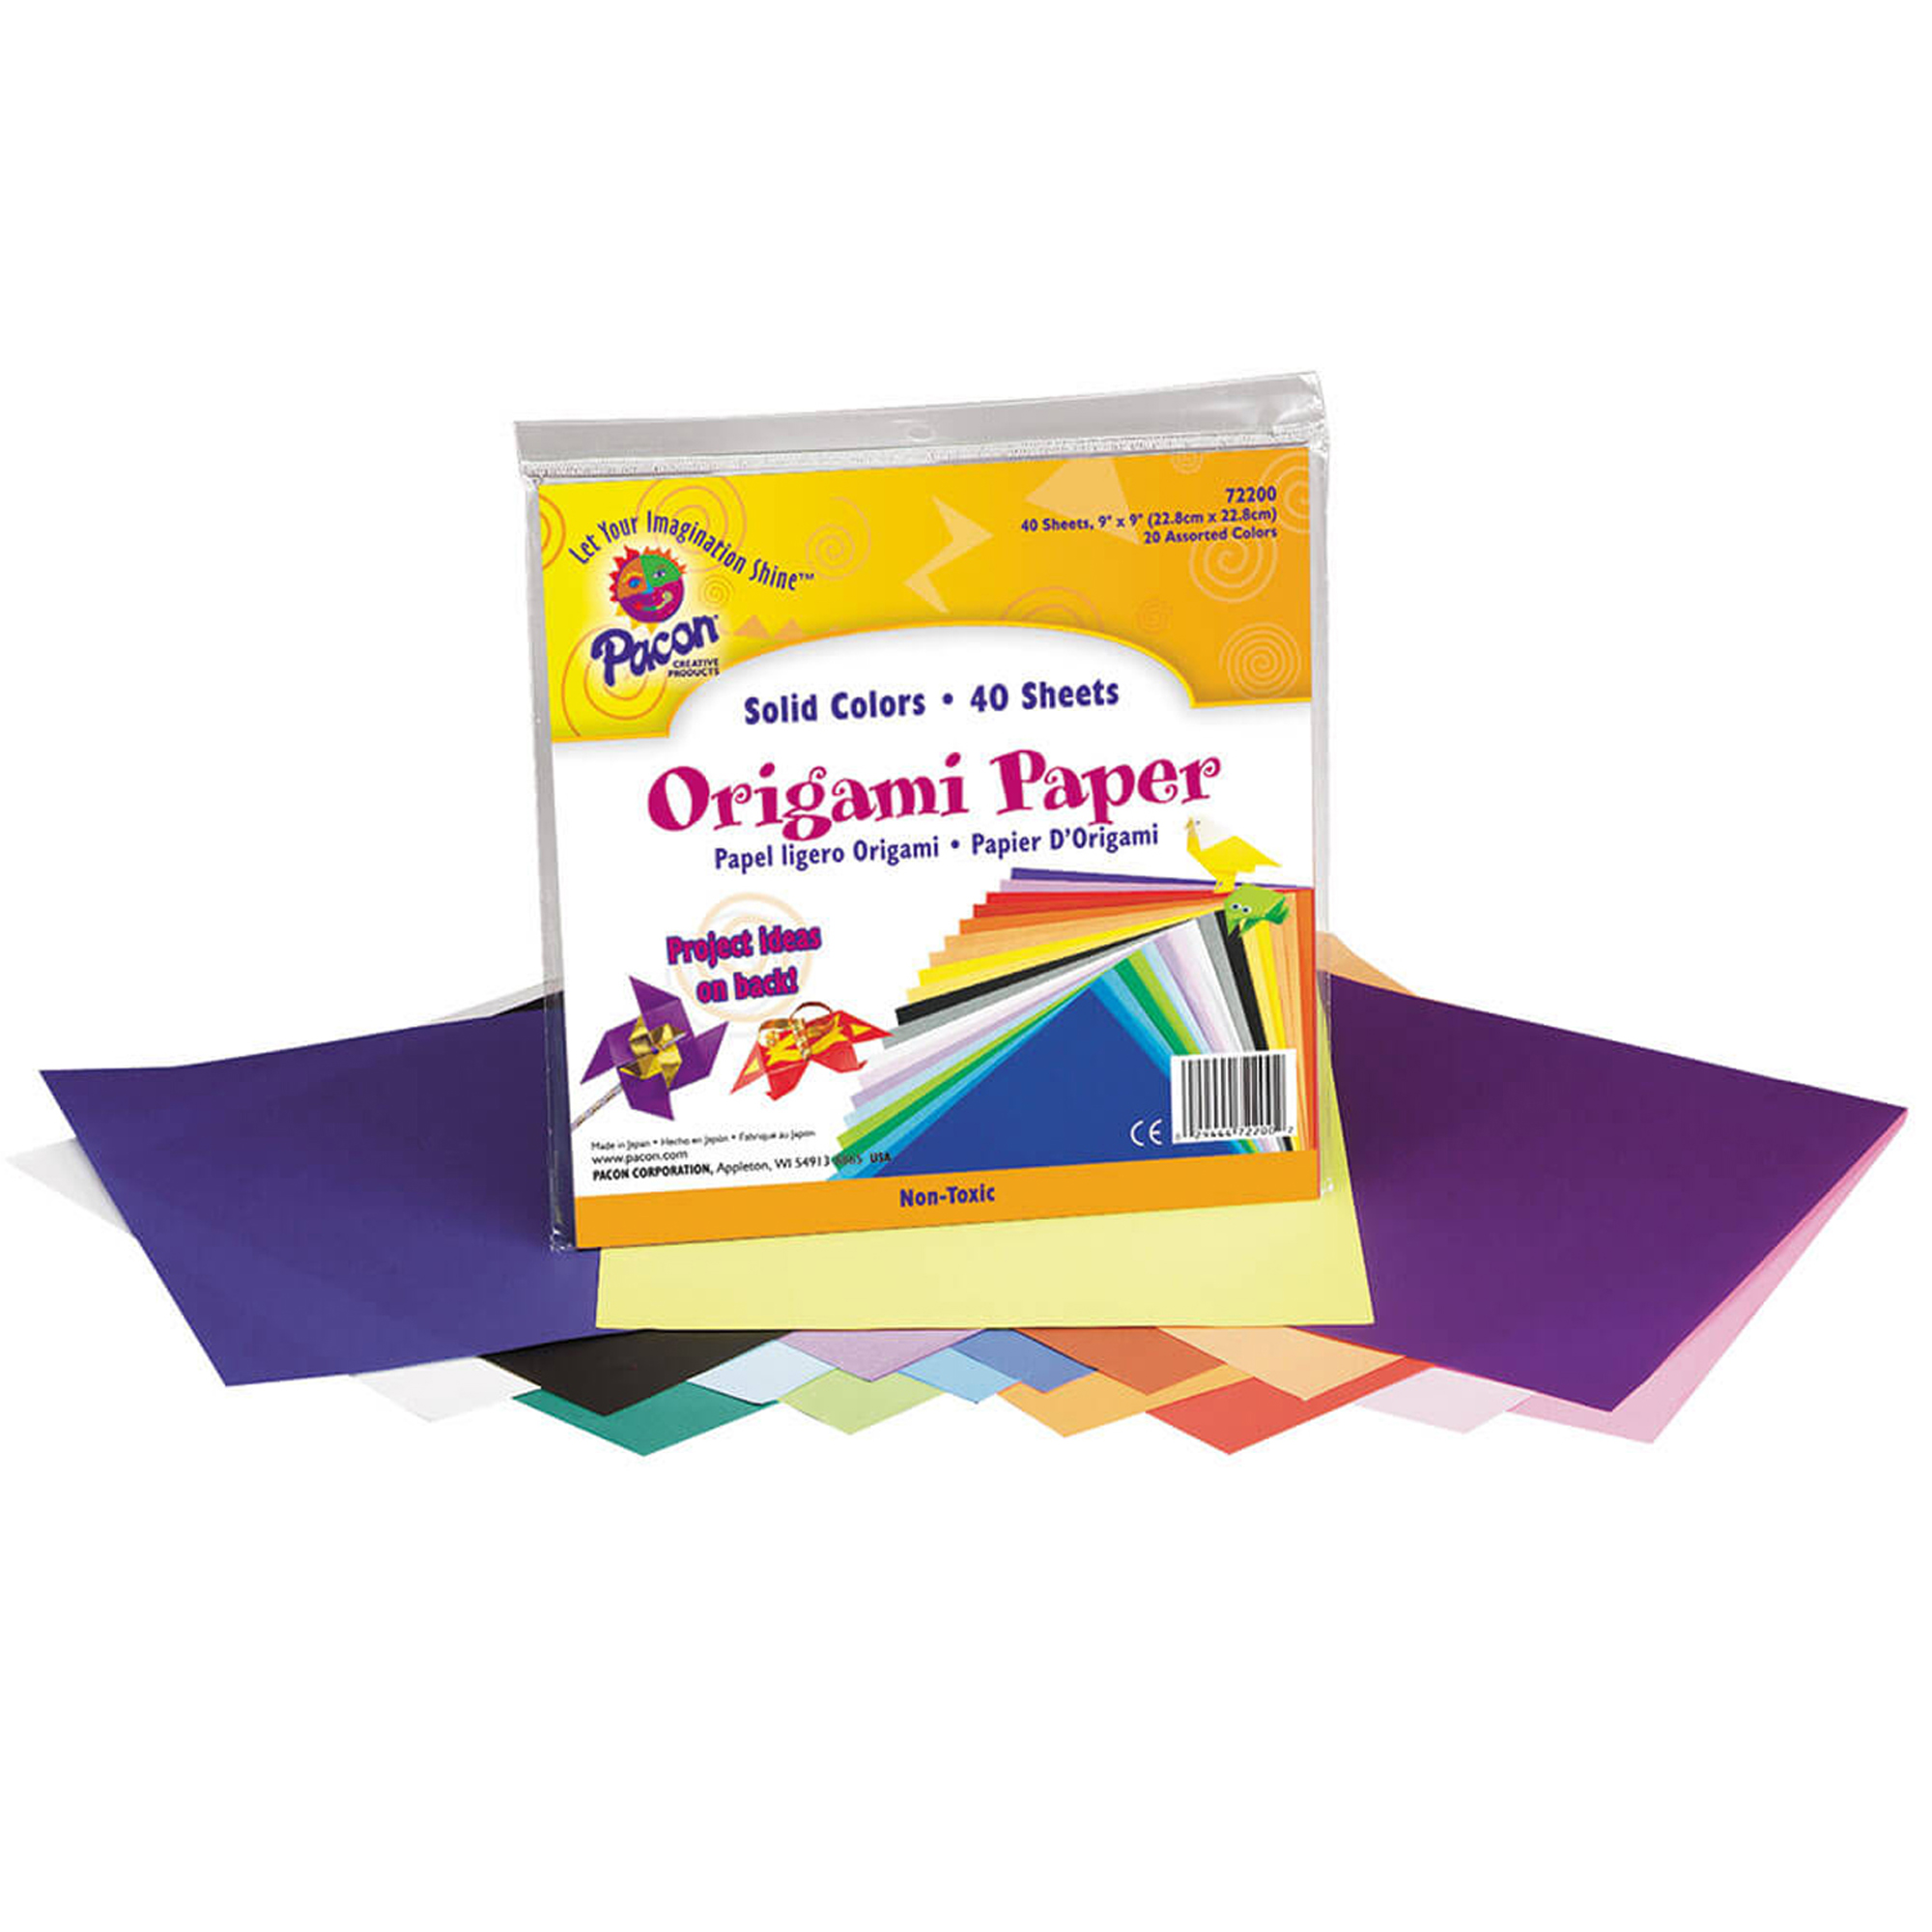 """Pacon® Origami Paper, 9"""" x 9"""", Assorted Colors - 40 Sheets per pack, 2 packs"""